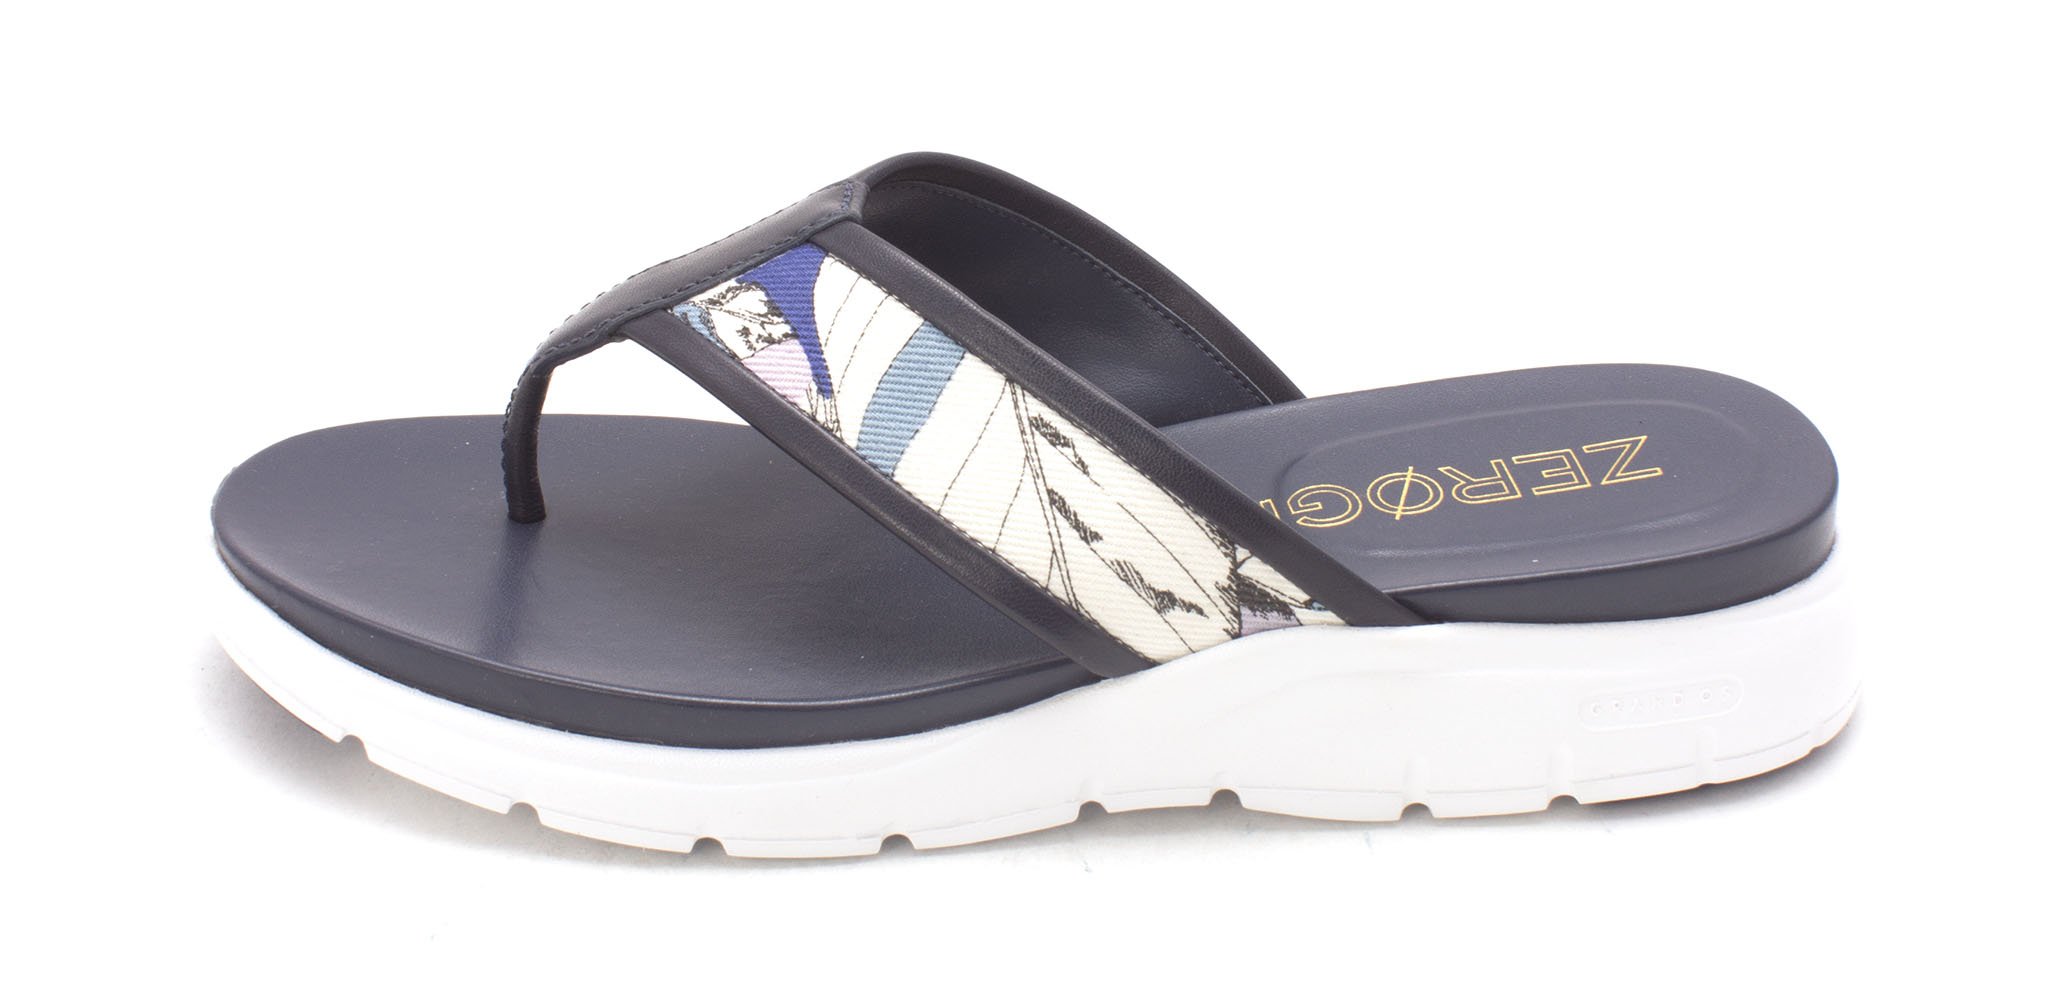 Cole Haan Womens CH2046S Open Toe Casual Slide Sandals Marine Blue Size 60